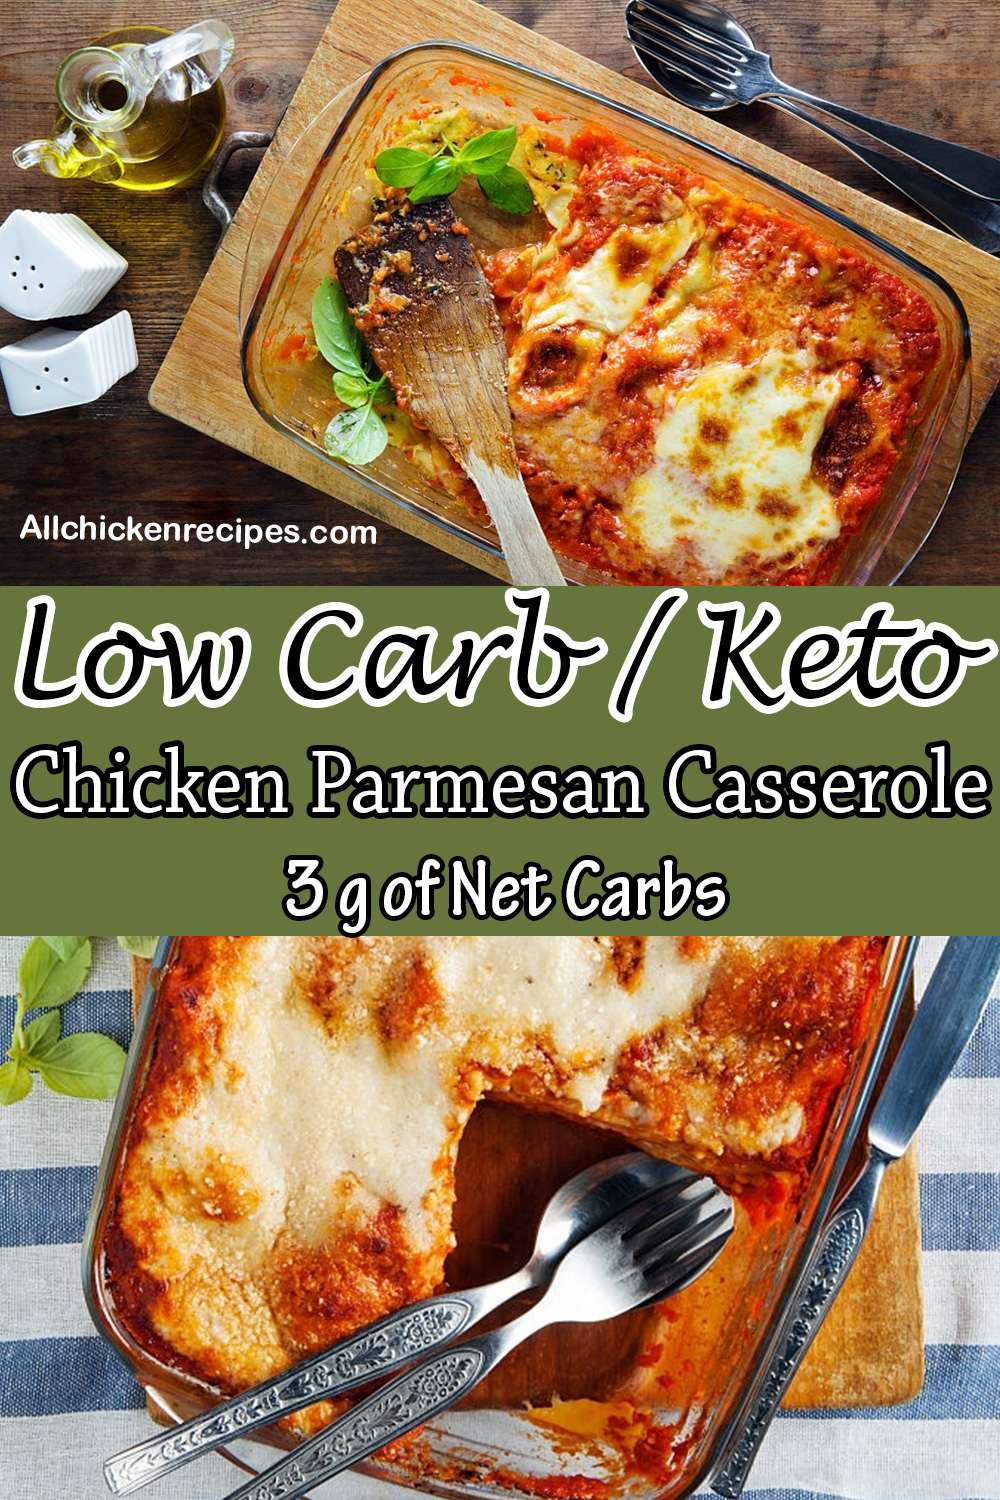 low carb keto chicken parmesan casserole